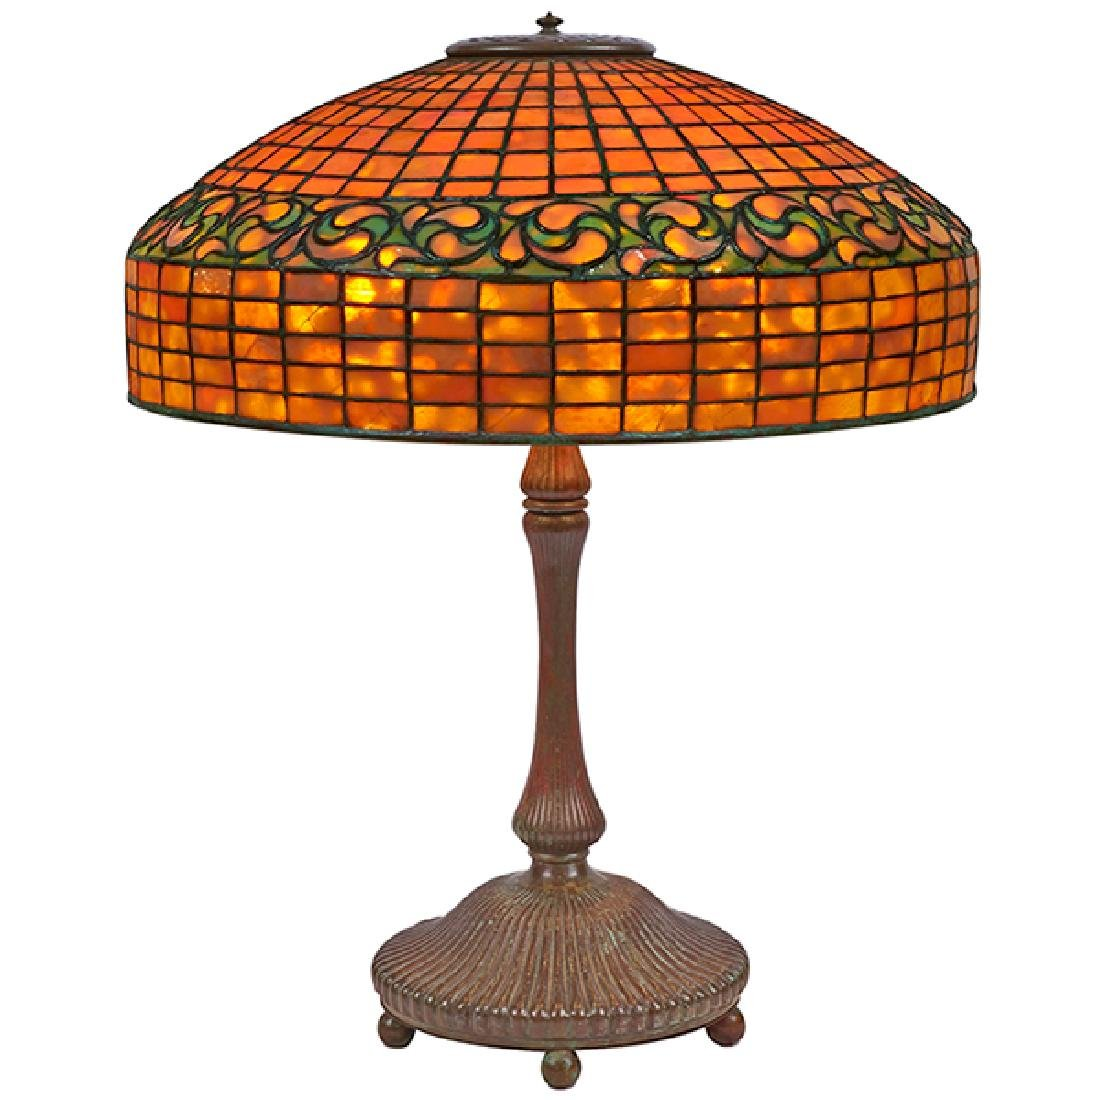 Tiffany Studios Lemon Leaf table lamp: shade, #1476 and